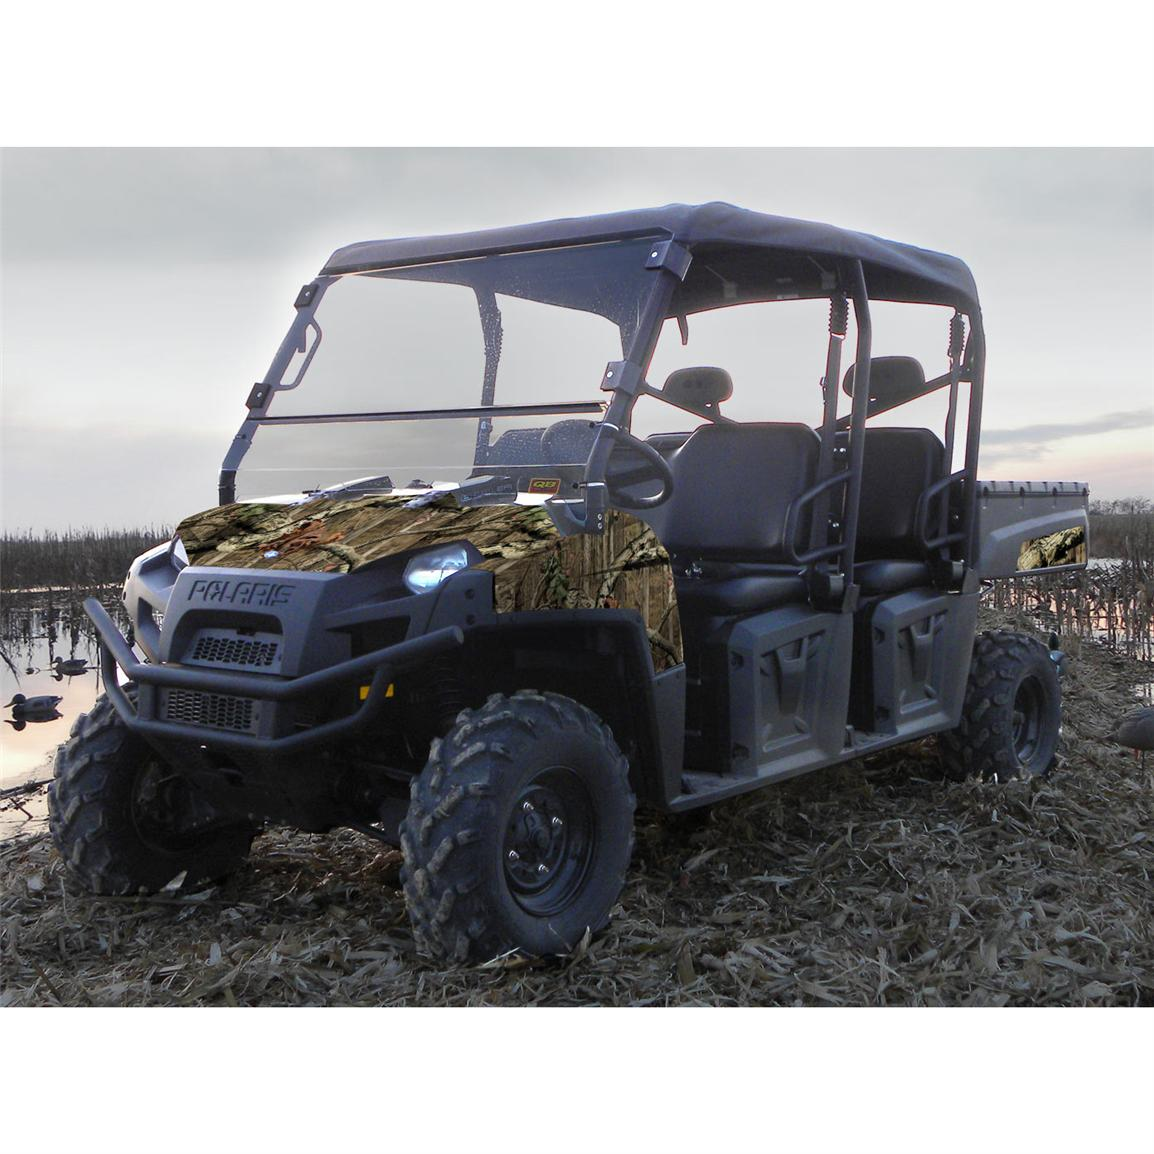 Mossy Oak® Graphics Side-by-Side UTV Camouflage Kit, MOBU Infinity